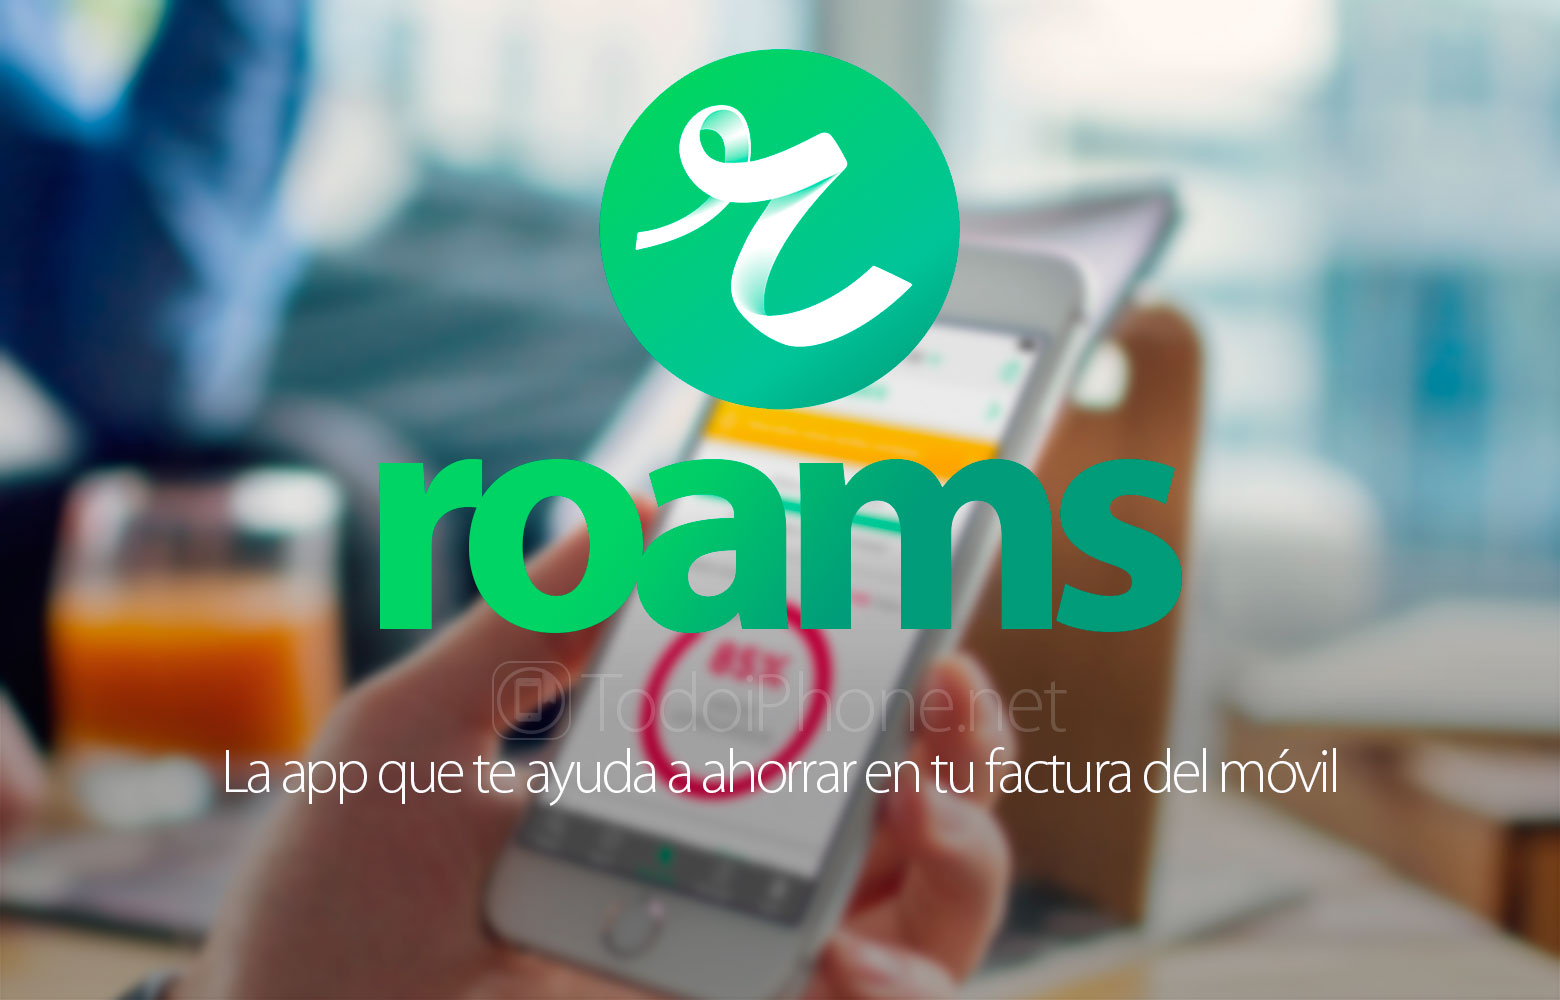 roams-app-ahorrar-factura-movil